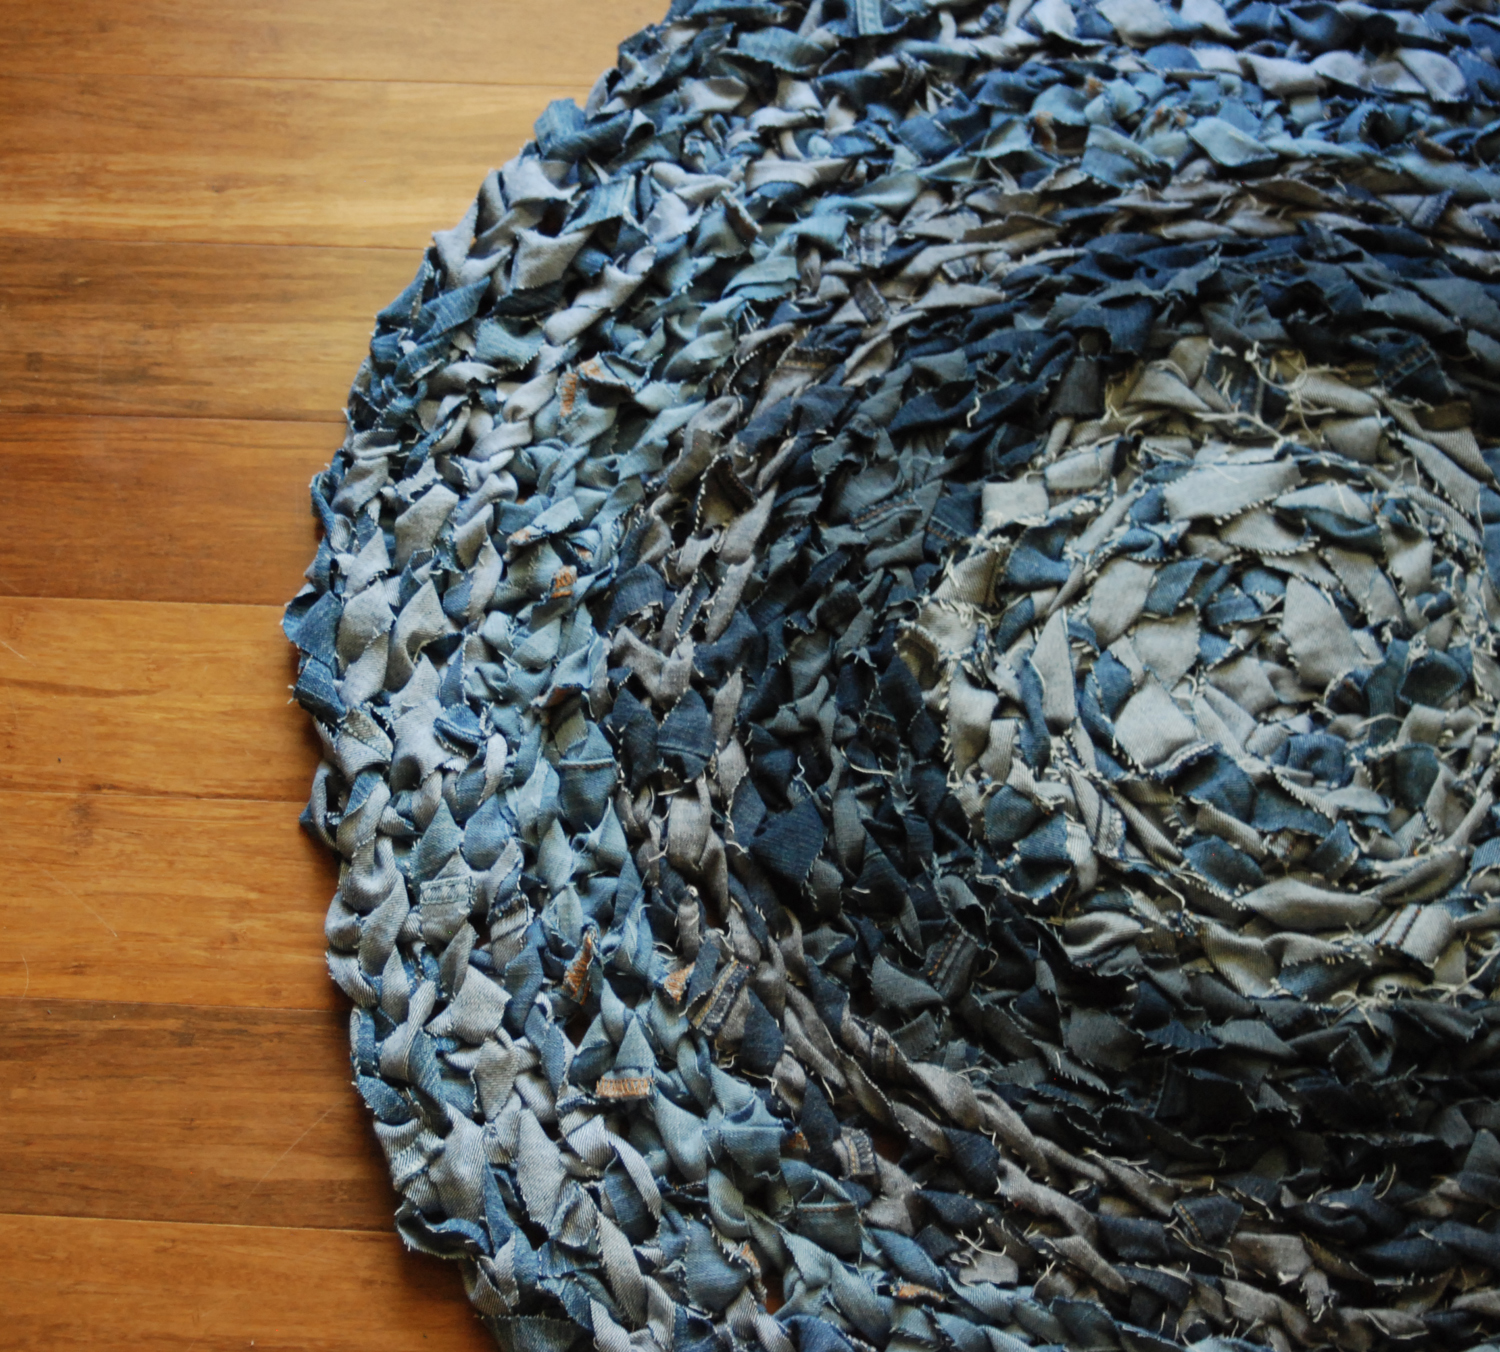 Herstellen Round Rug, 2017, detail  |  Upcycled denim; hand crocheted.